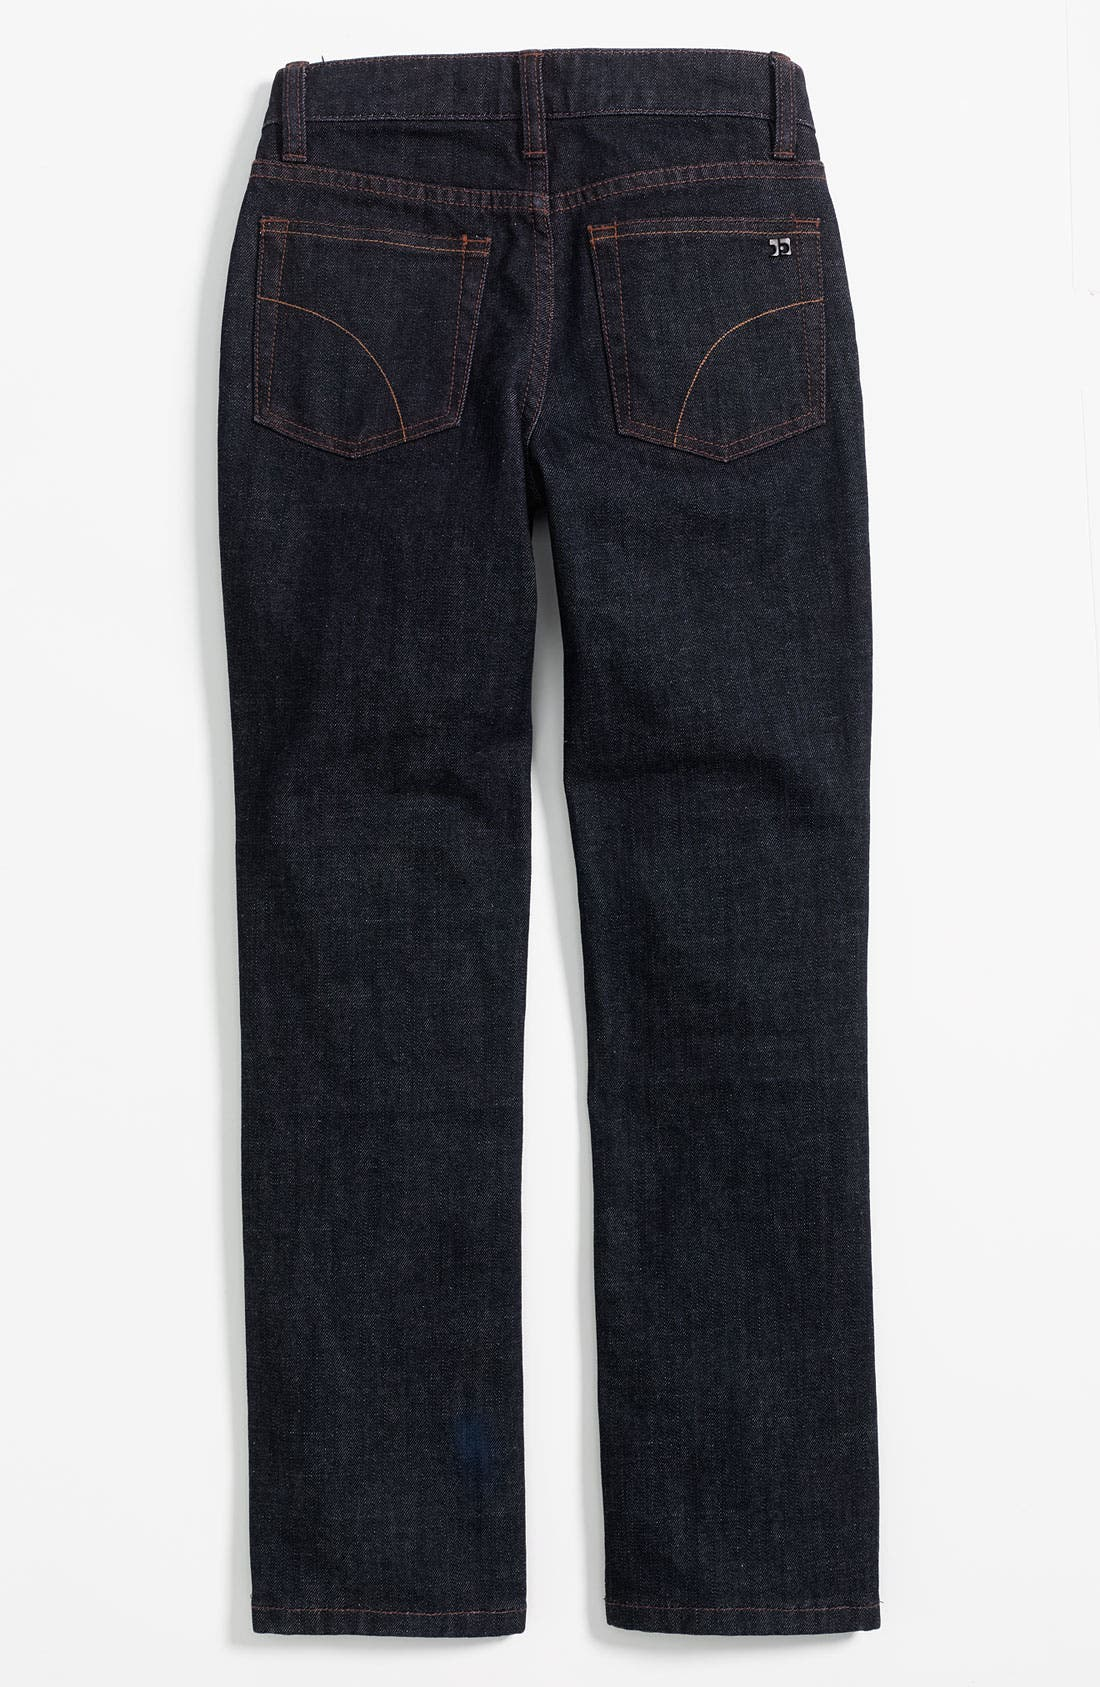 Alternate Image 1 Selected - Joe's 'Brixton' Jeans (Big Boys)